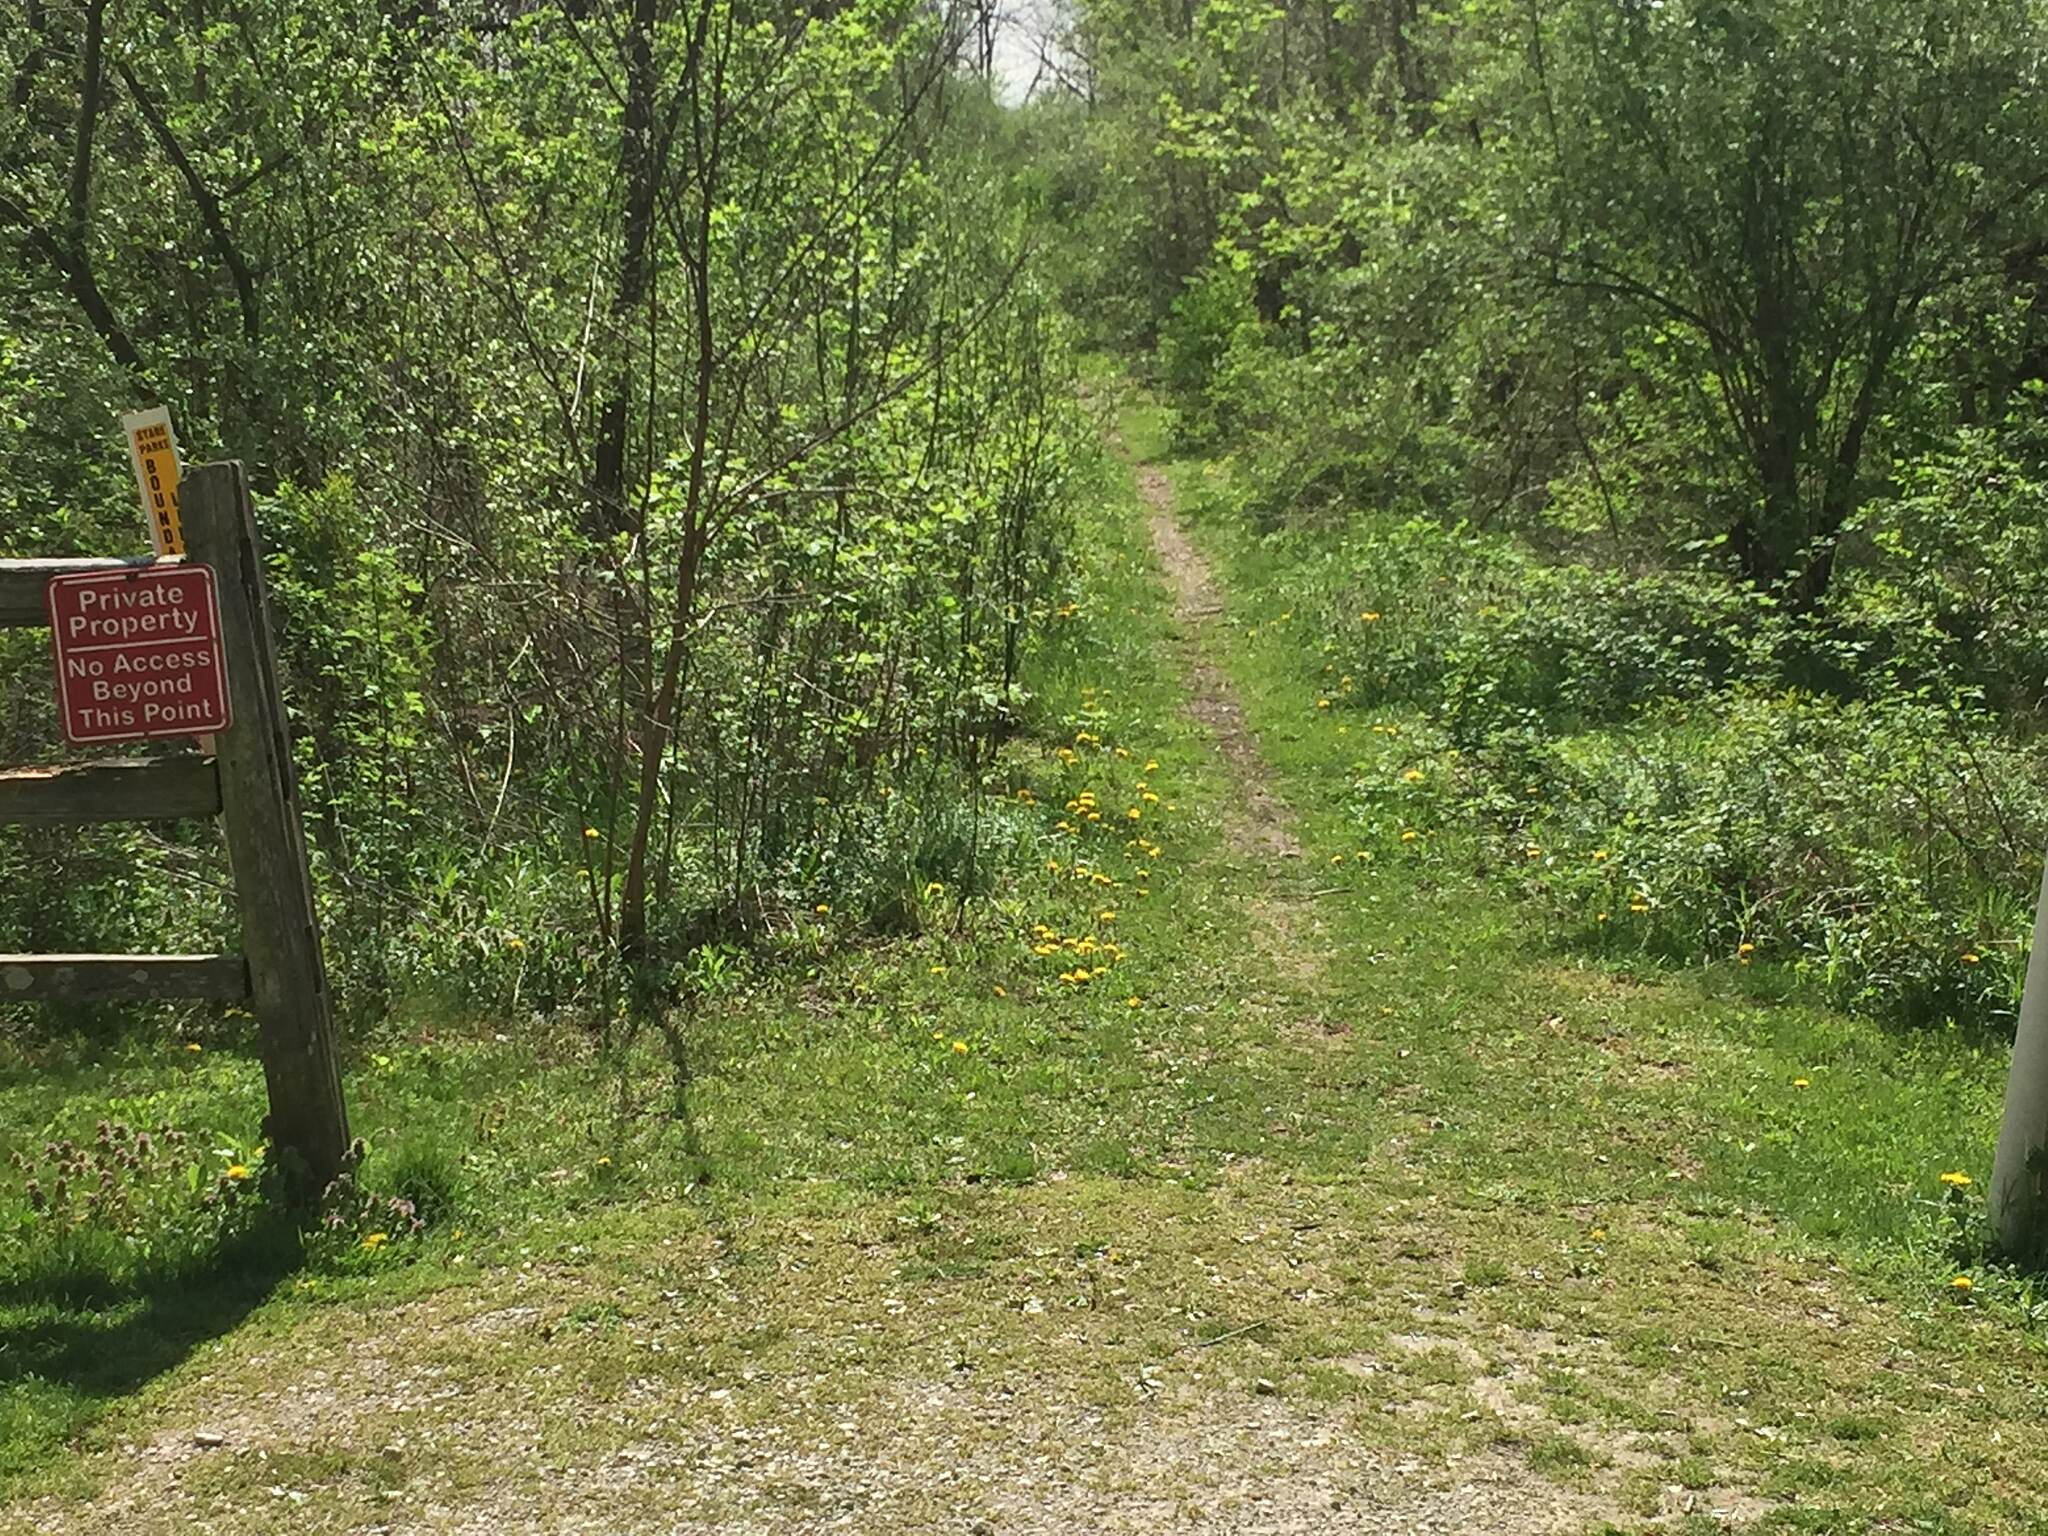 Nickelplate Trail (OH) End of the Line? The trail ends at its current location due to the old rail line entering into privately held land.  April 21, 2017.